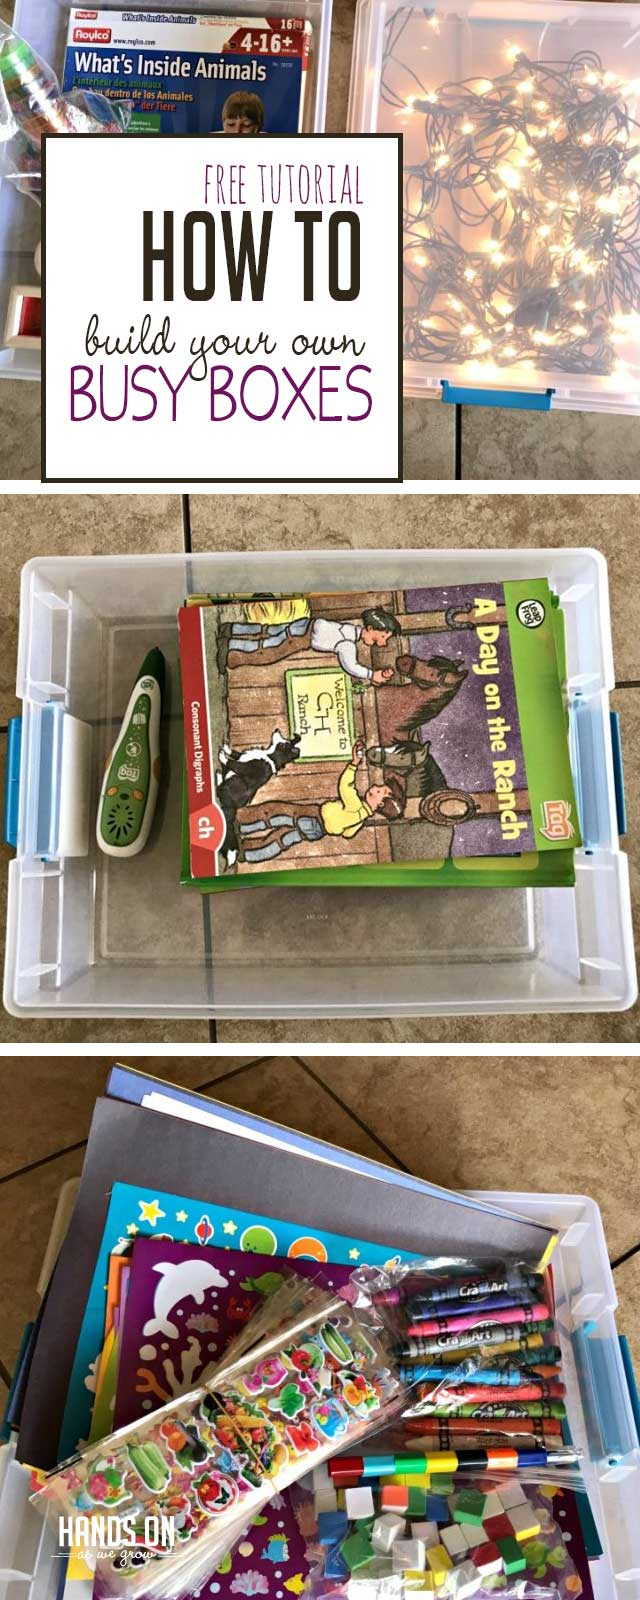 Use this free tutorial to build DIY busy boxes for quiet time play activities. Learn the exact steps and materials you need to create fun learning activities for quiet play.